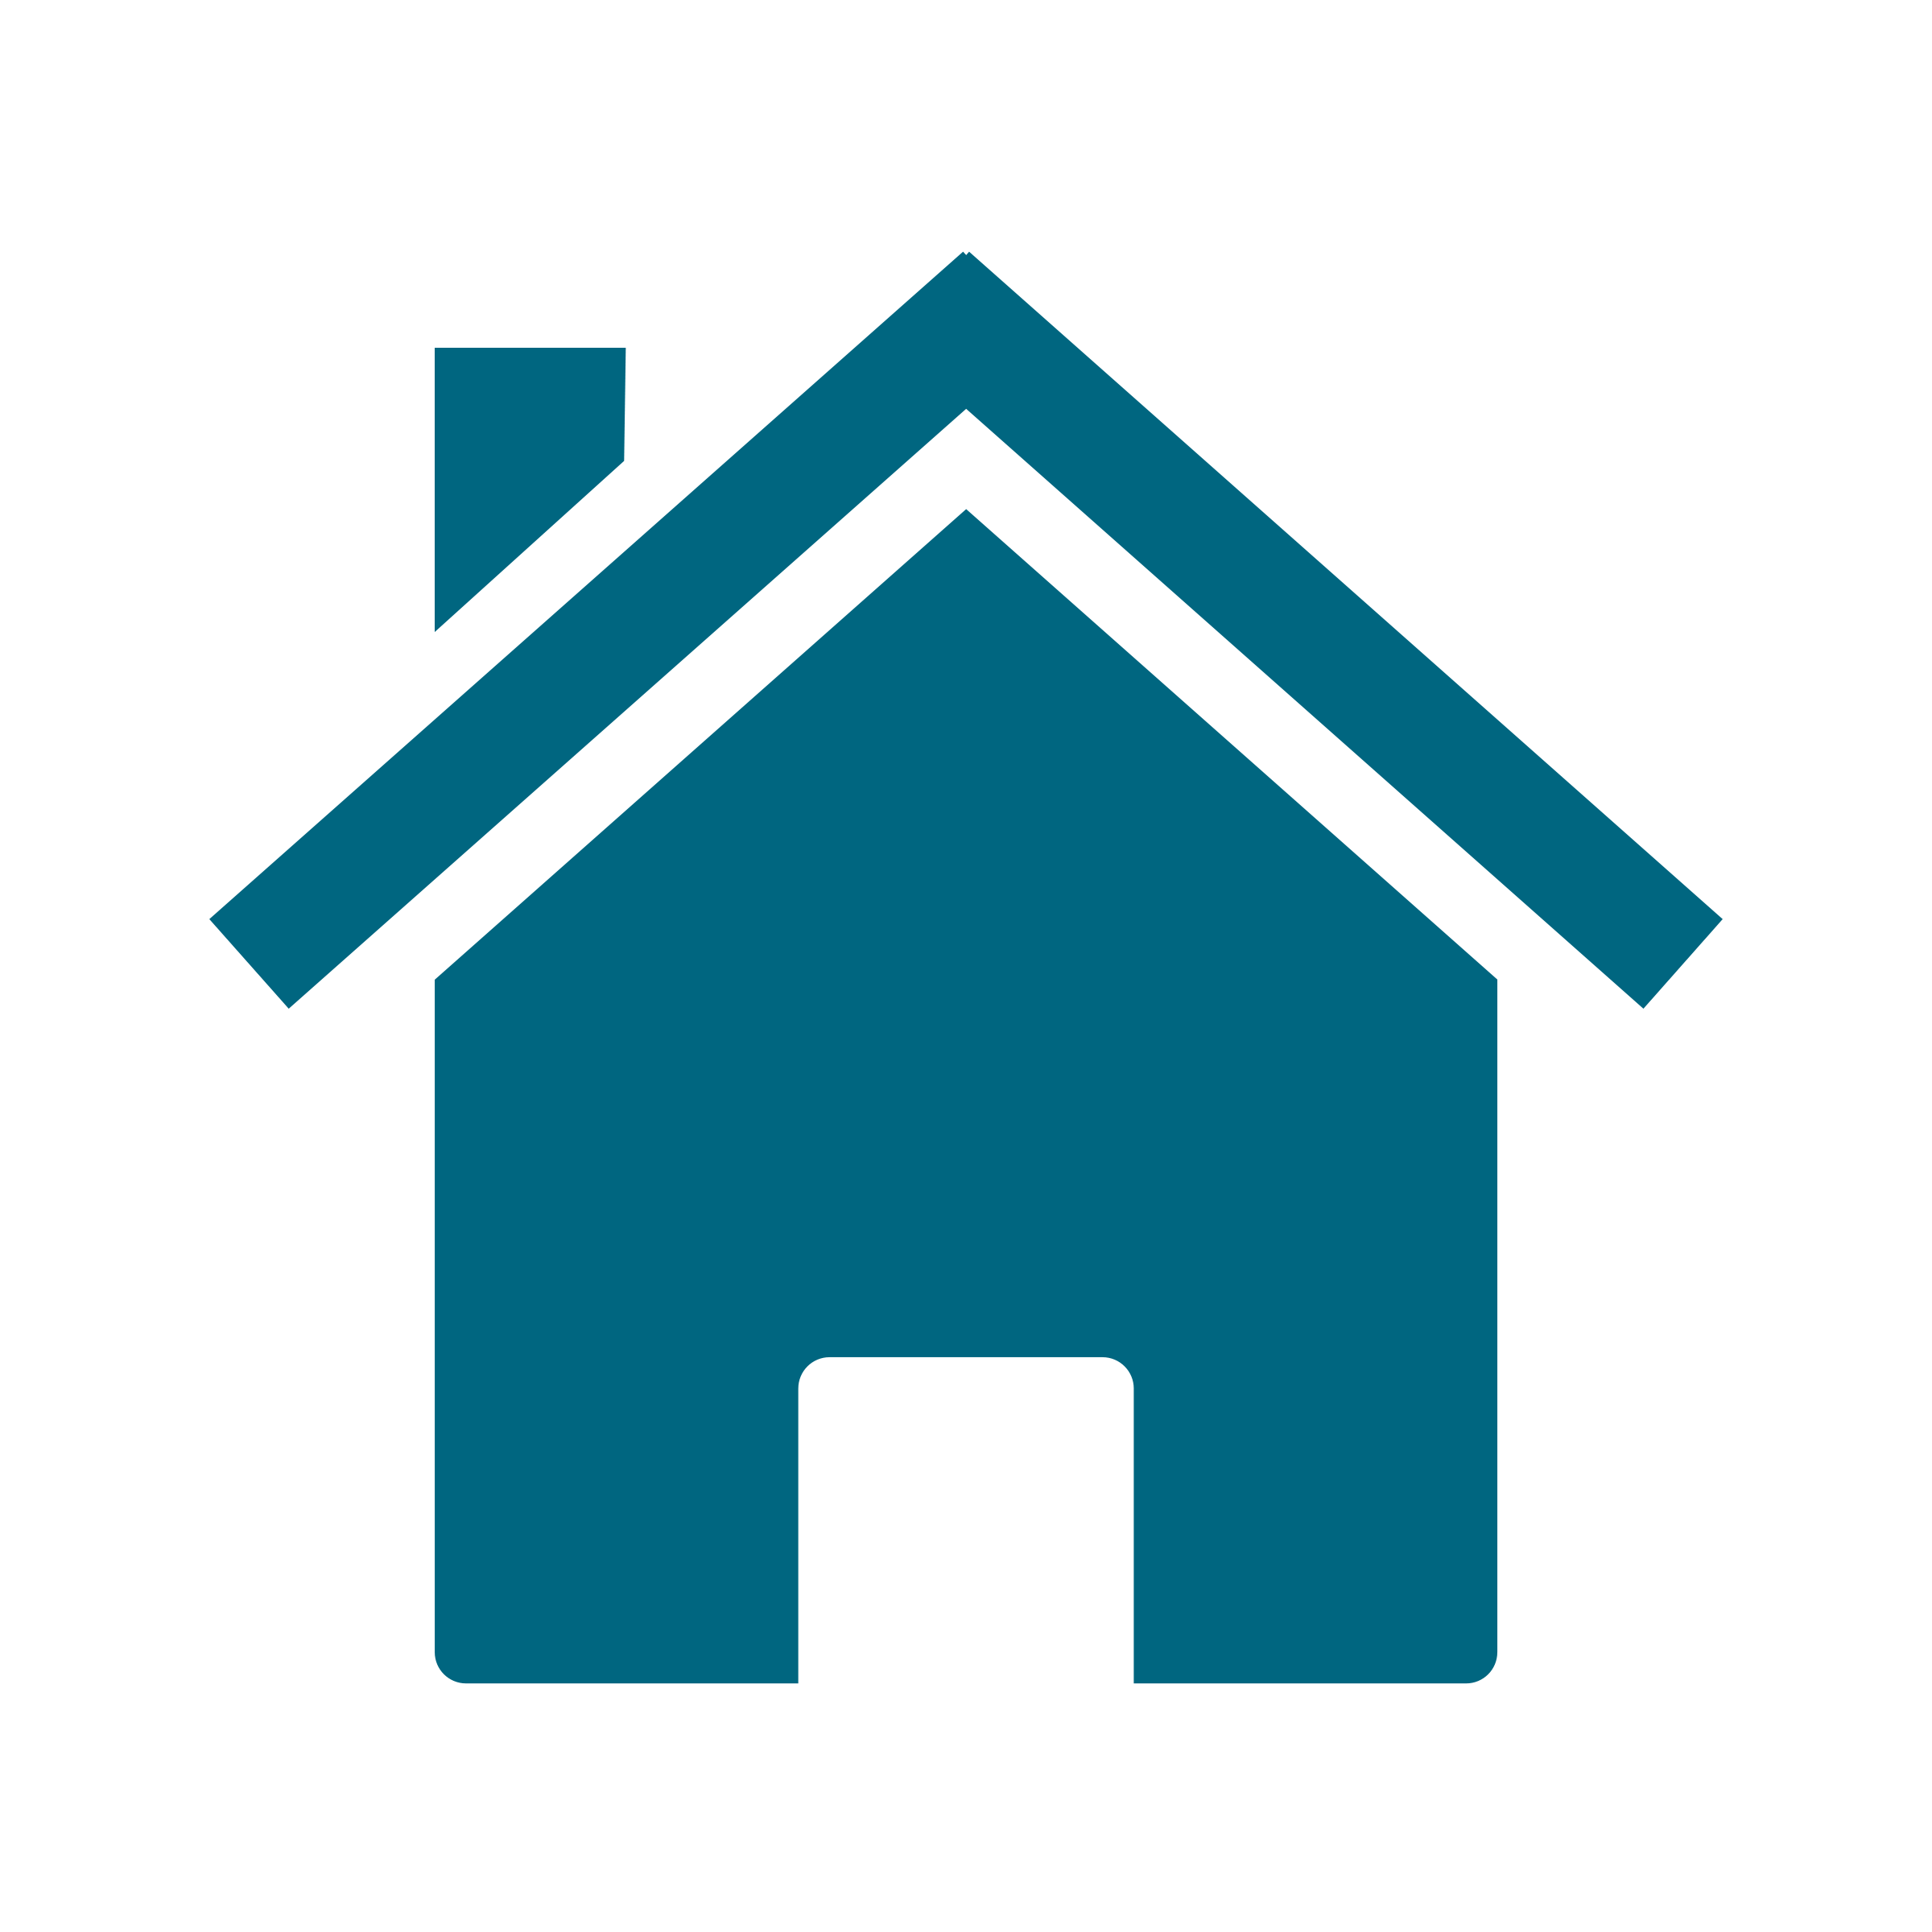 Png Hd Homes Transparent Hd Homes Png: PNG HD Of Homes Transparent HD Of Homes.PNG Images.